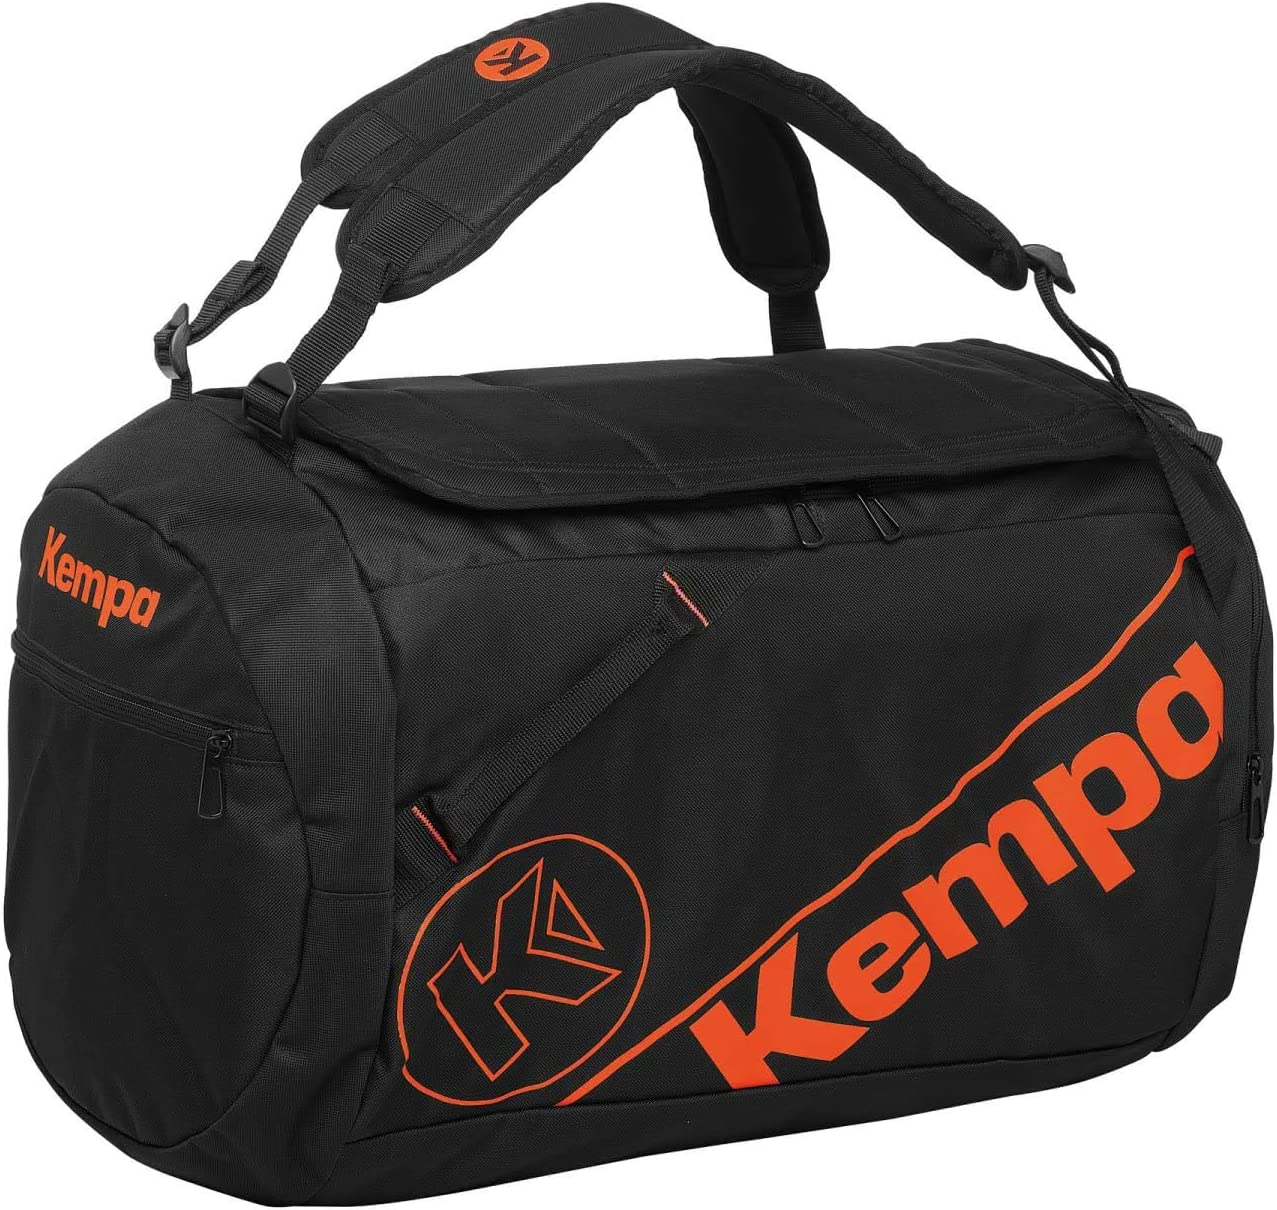 Kempa K-Line Bag Pro Sport Unisex Ad Function Backpack with Large discharge sale Now on sale